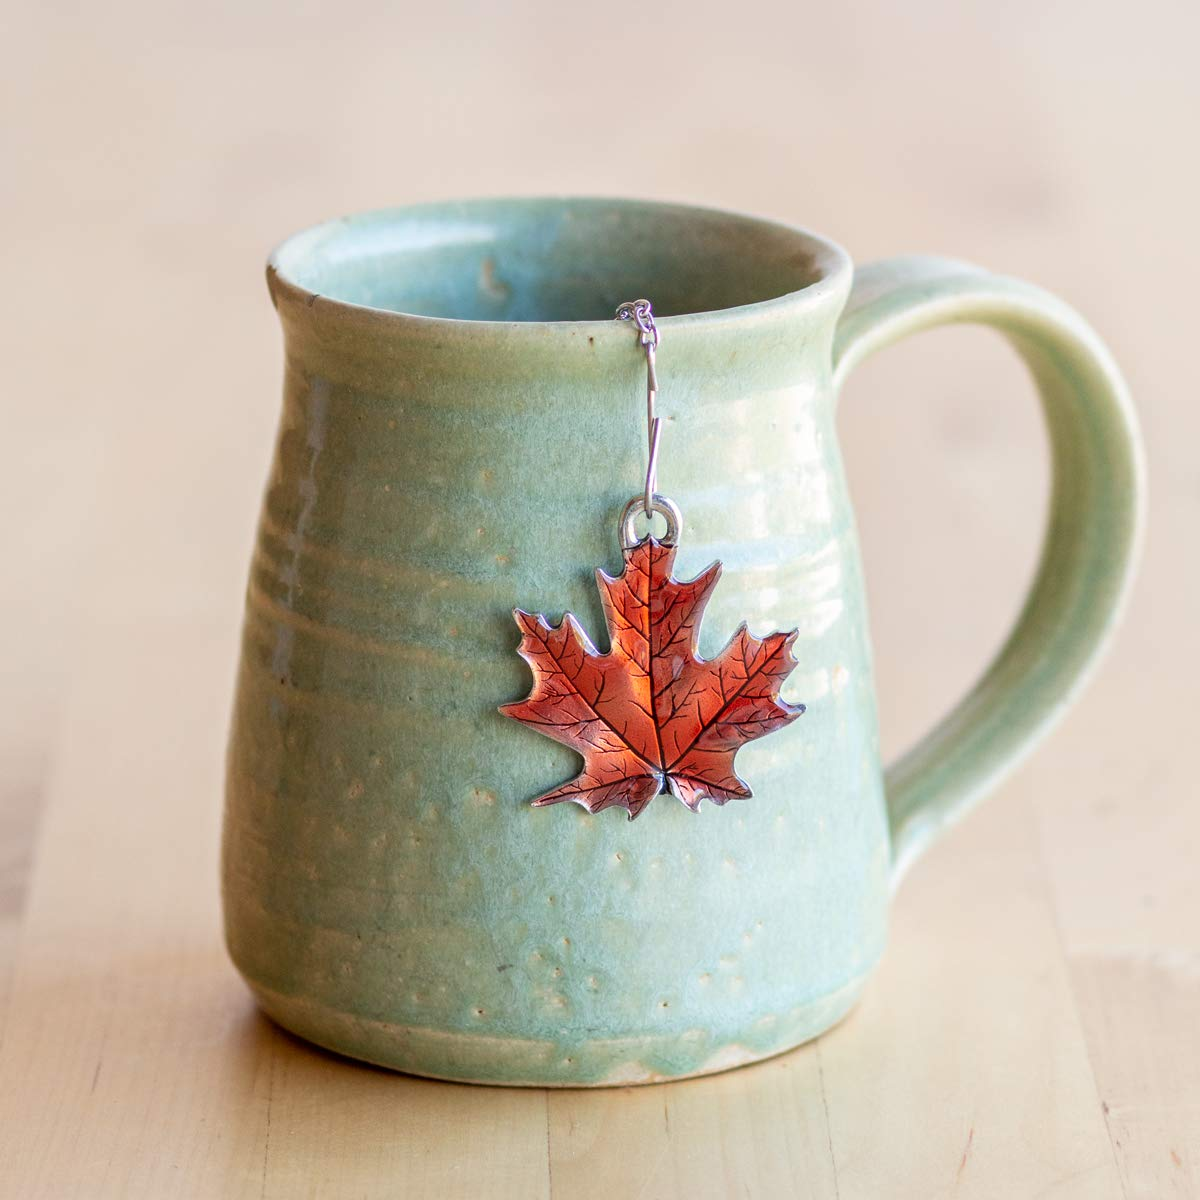 DANFORTH - Maple Leaf/Autumn Tea Infuser - Handcrafted - Made in USA - Gift Boxed